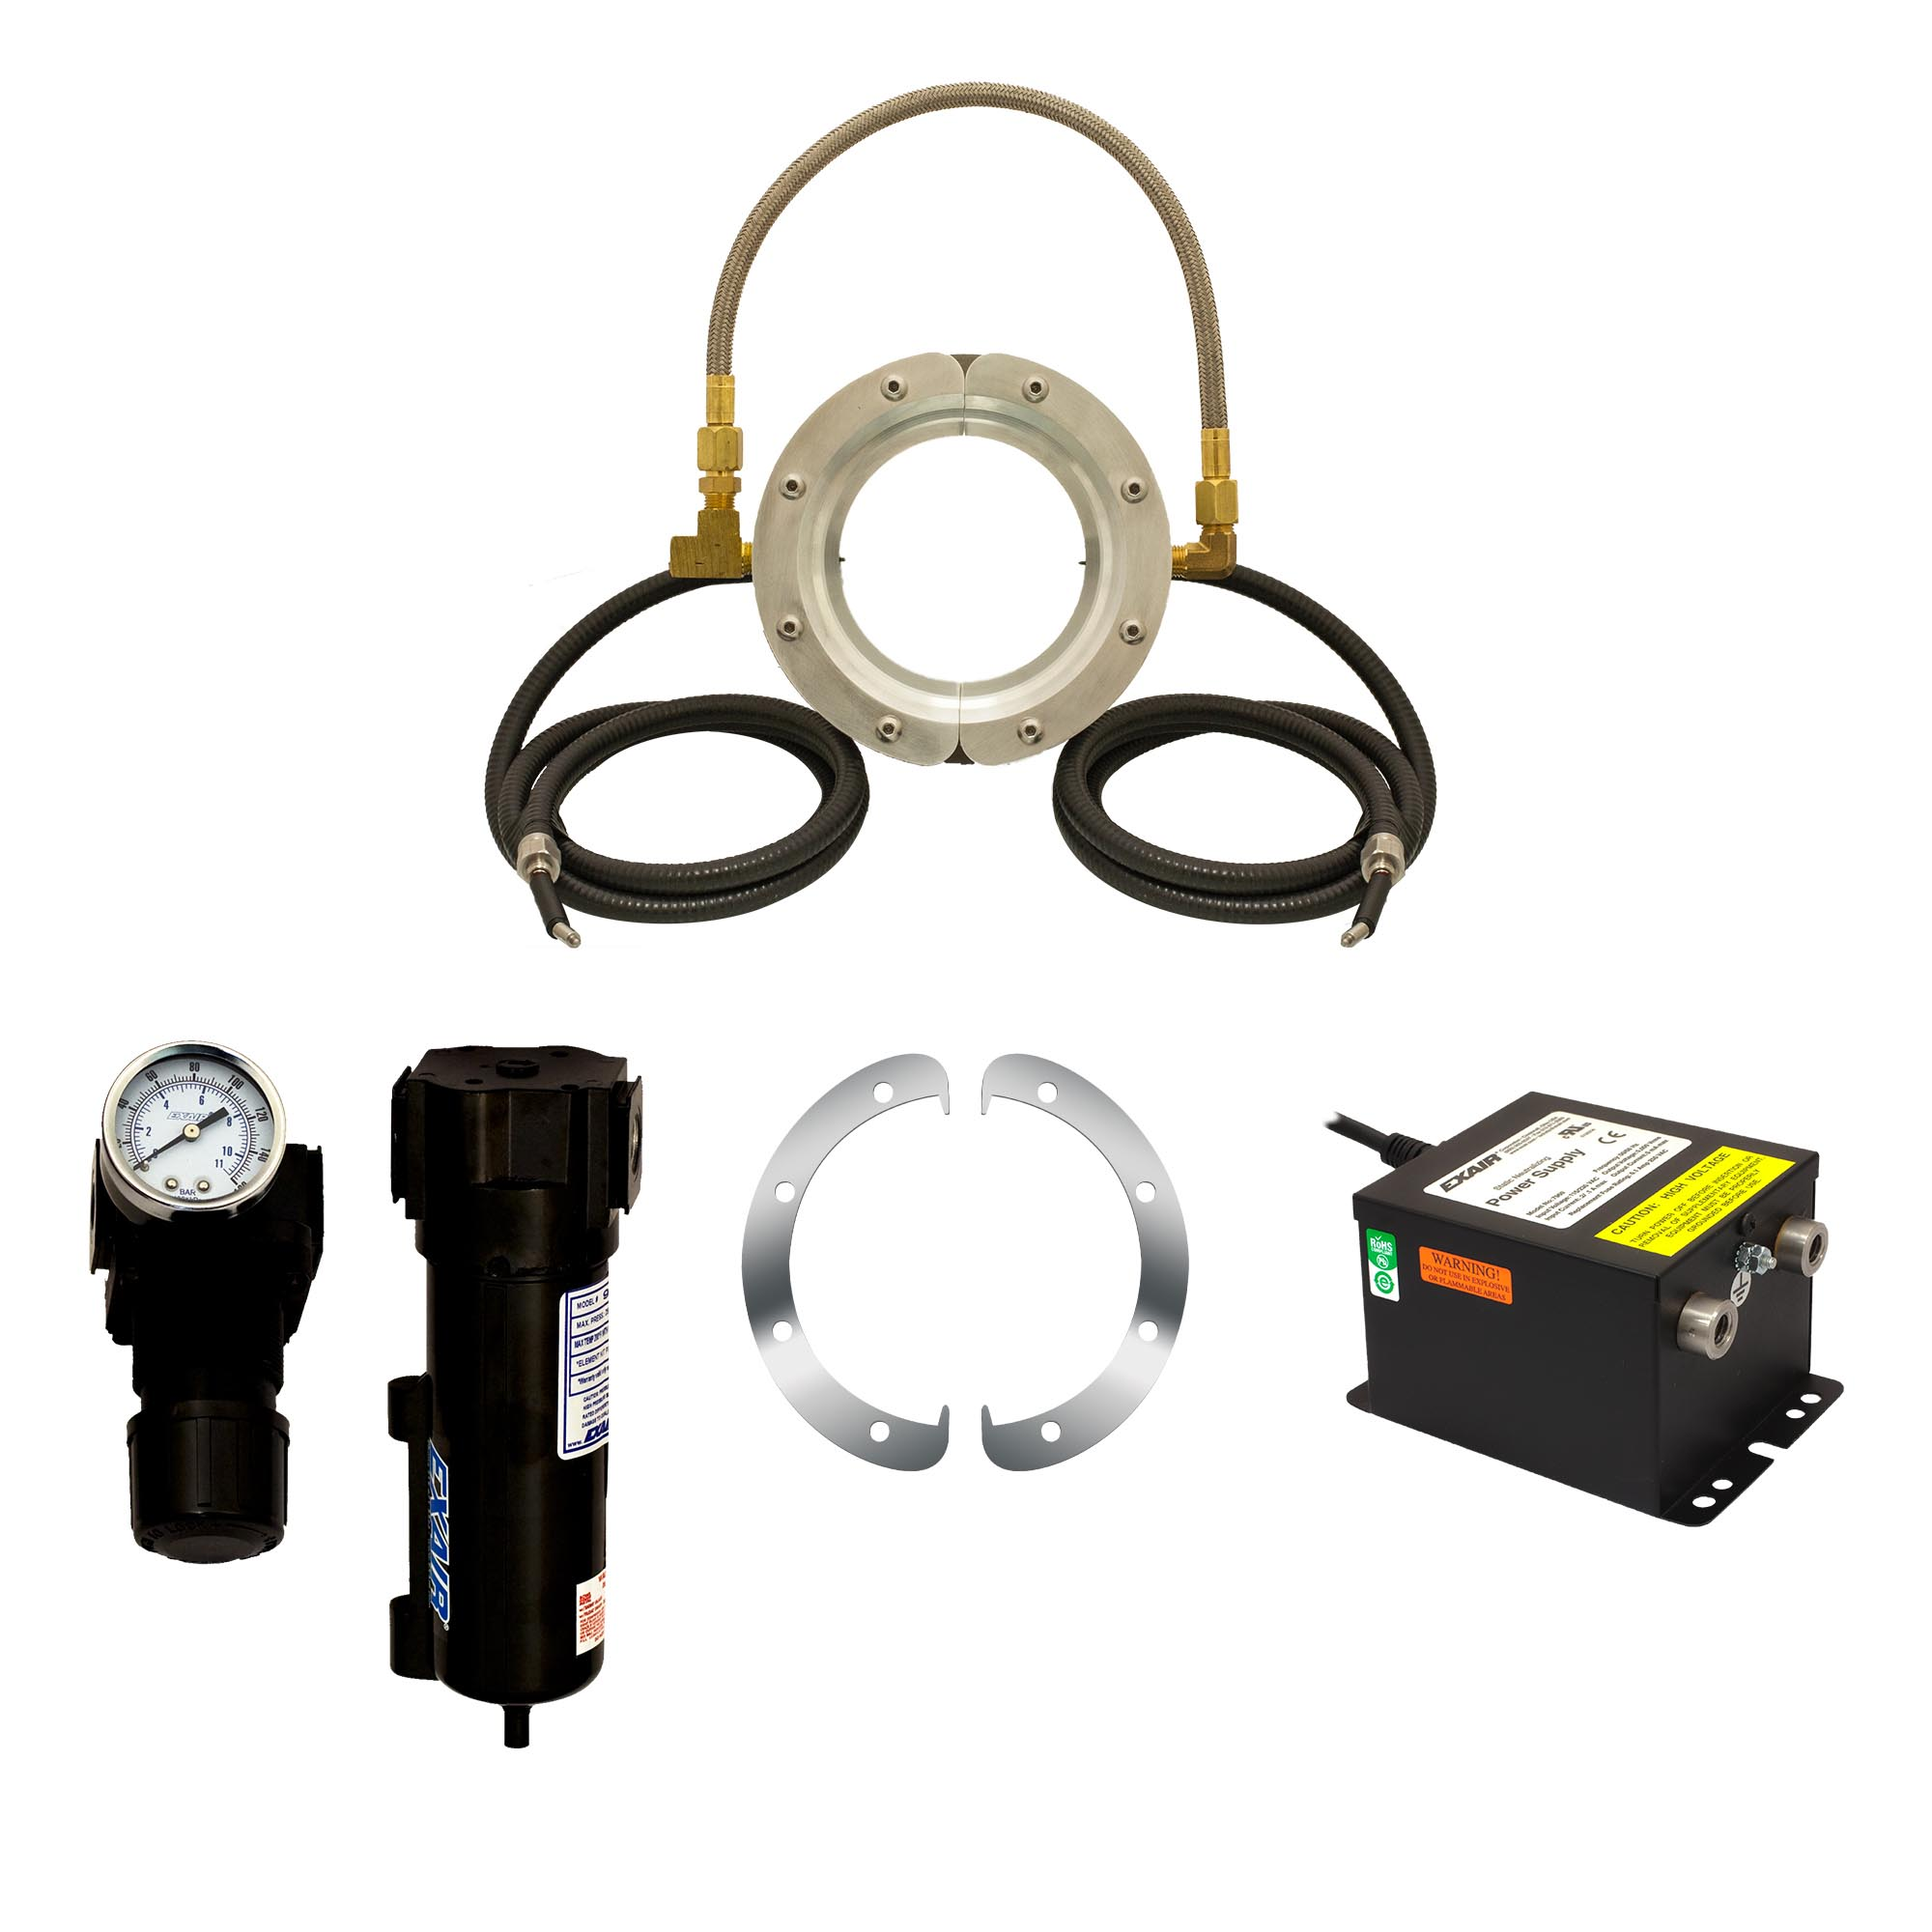 Super Ion Air Wipe Kits include the Super Ion Air Wipe, Power Supply, Filter/Separator, Pressure Regulator and Shim Set